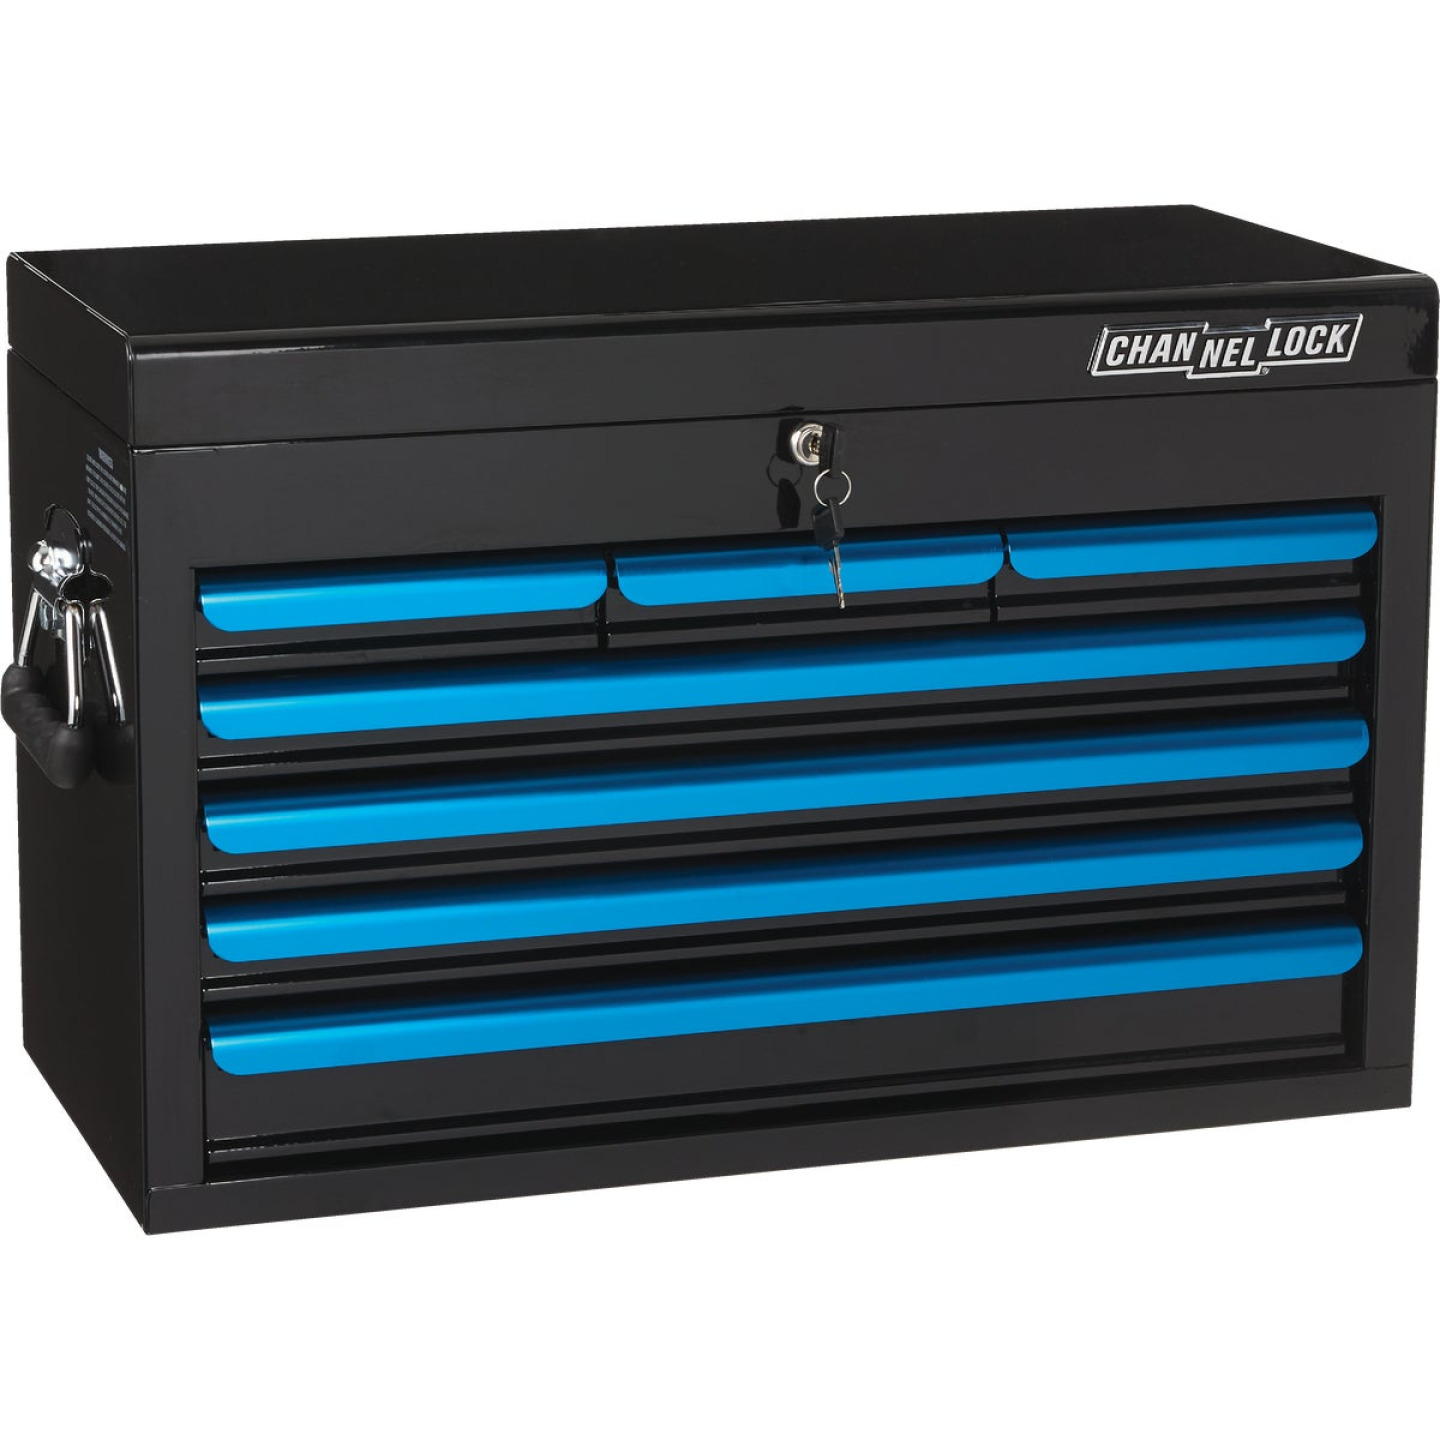 Channellock 26 In. 7-Drawer Black and Blue Tool Chest Image 1